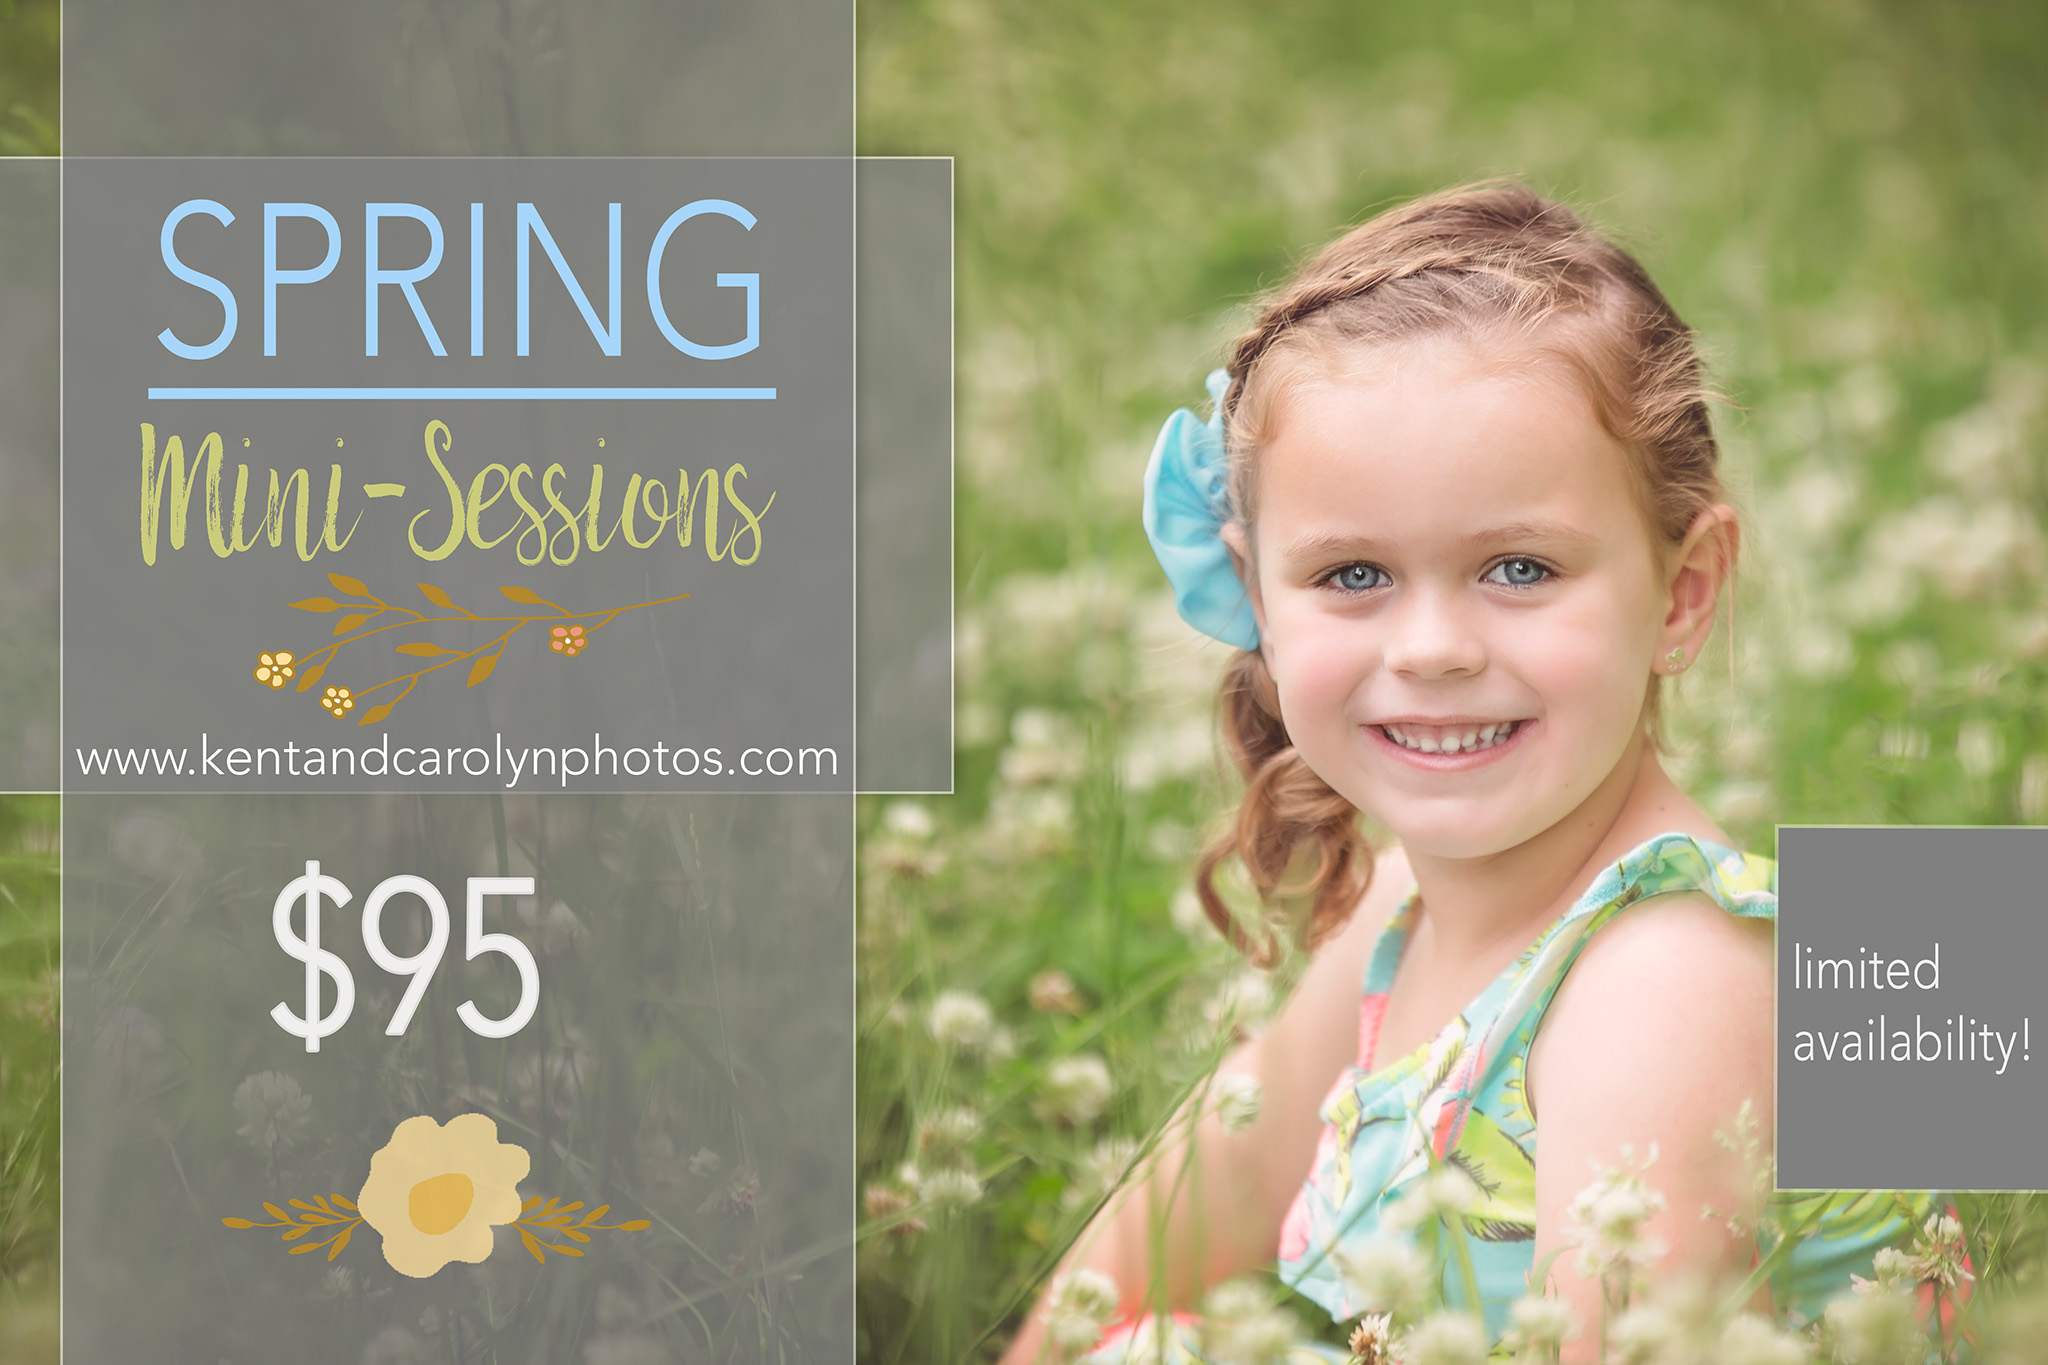 Spunky Bella poses in a field of clover during her Spring portrait session, Springfield Missouri.